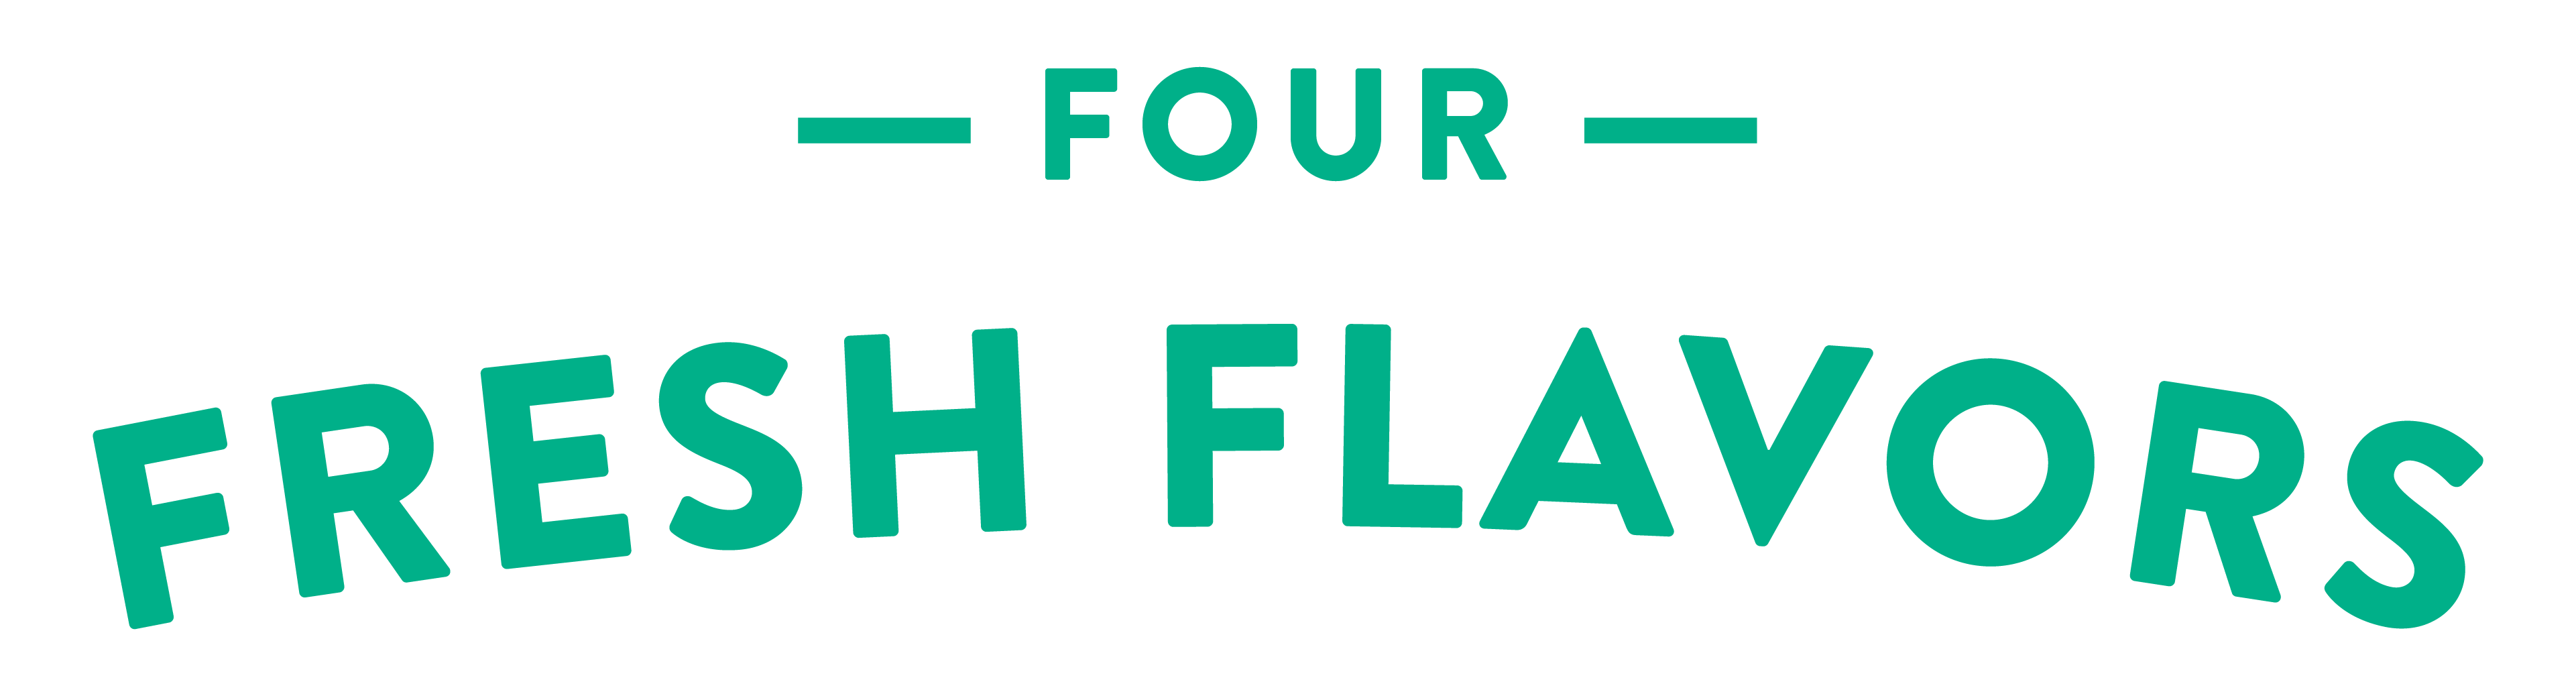 Introducing Four Fresh Flavors